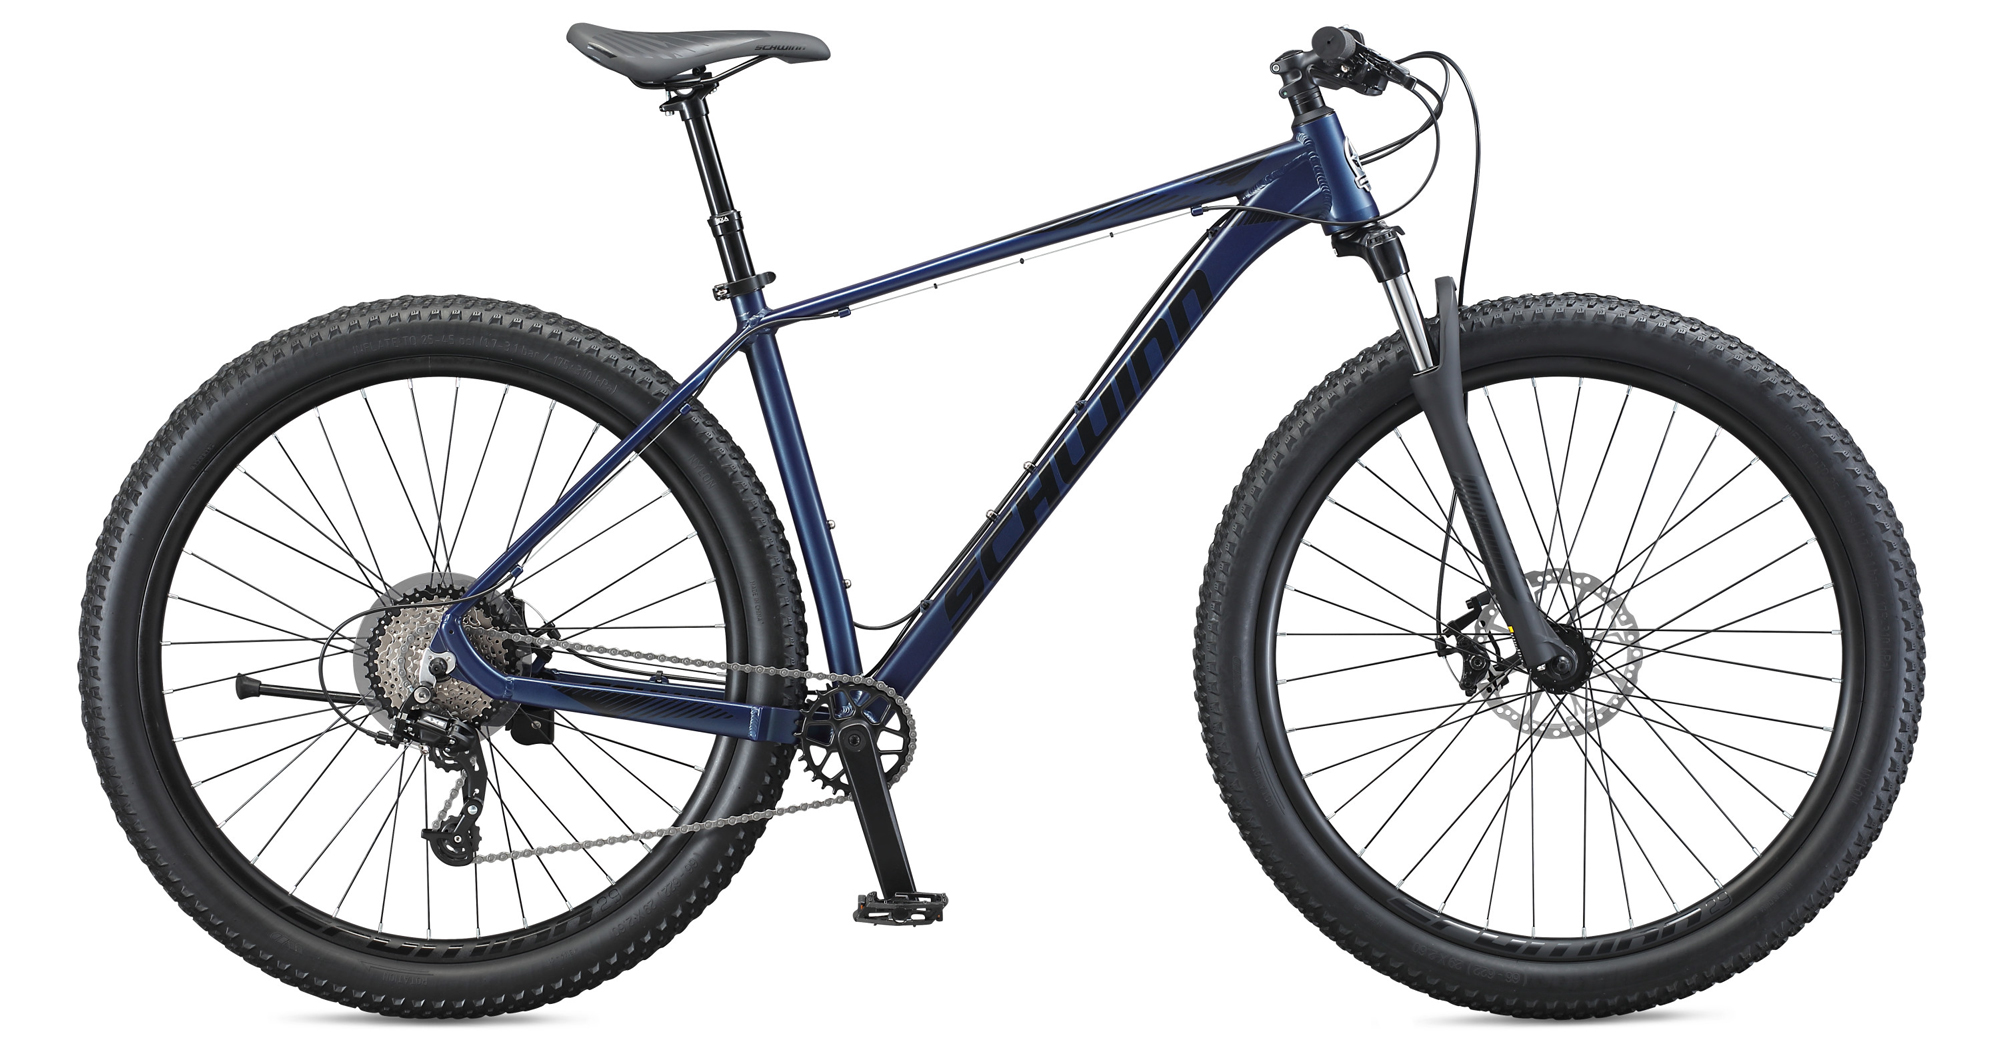 Schwinn Axum mountain bike